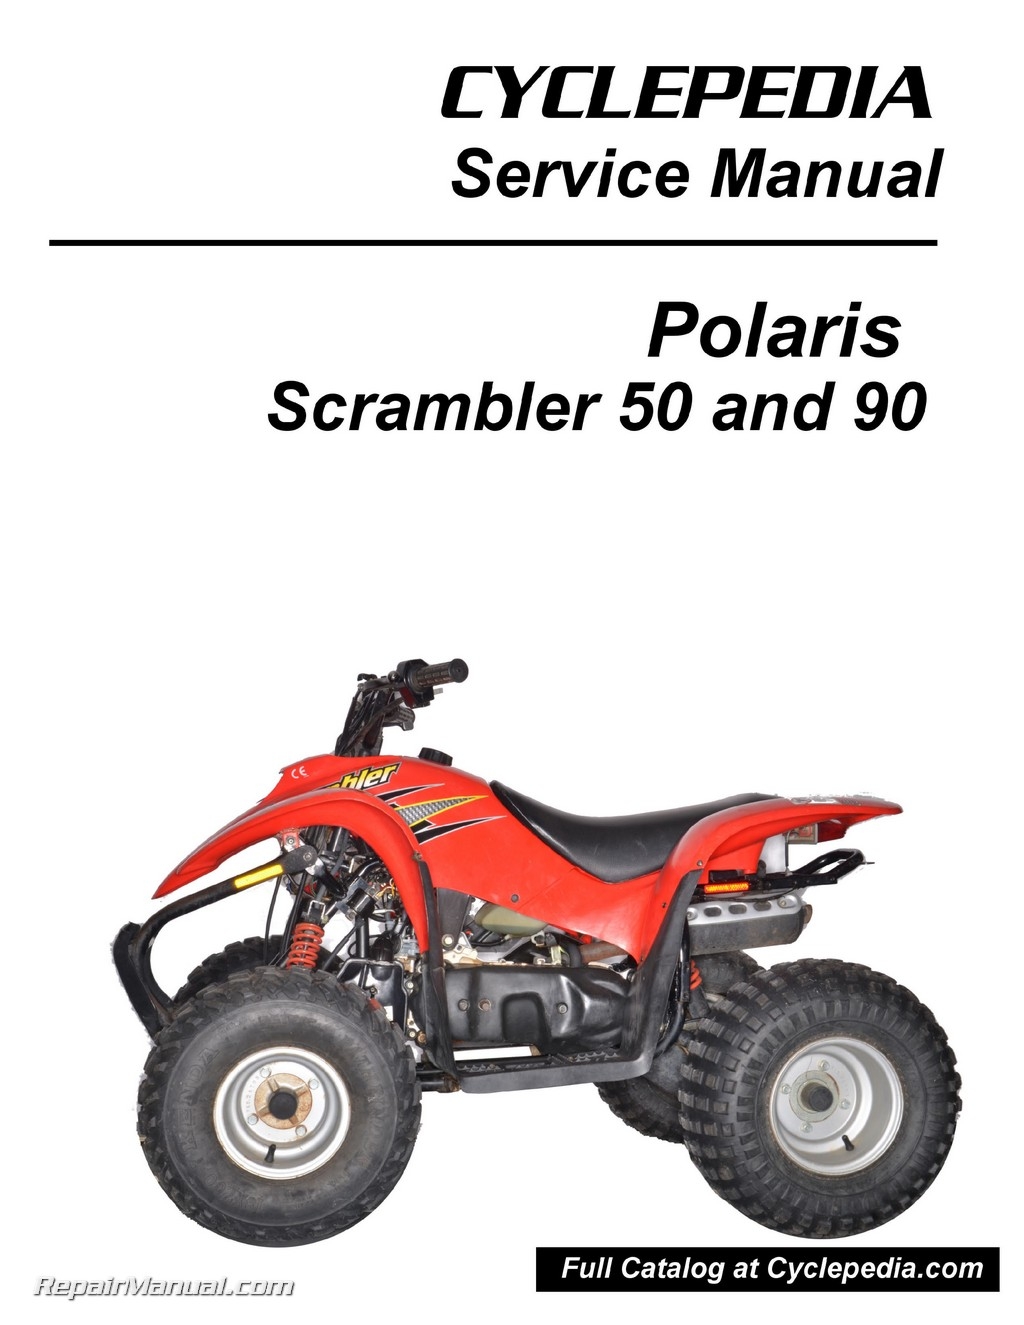 polaris 50cc 90cc scrambler atv print service manual by cyclepedia rh repairmanual com Polaris Scrambler 50 Drawing Polaris Scrambler 50 Drawing